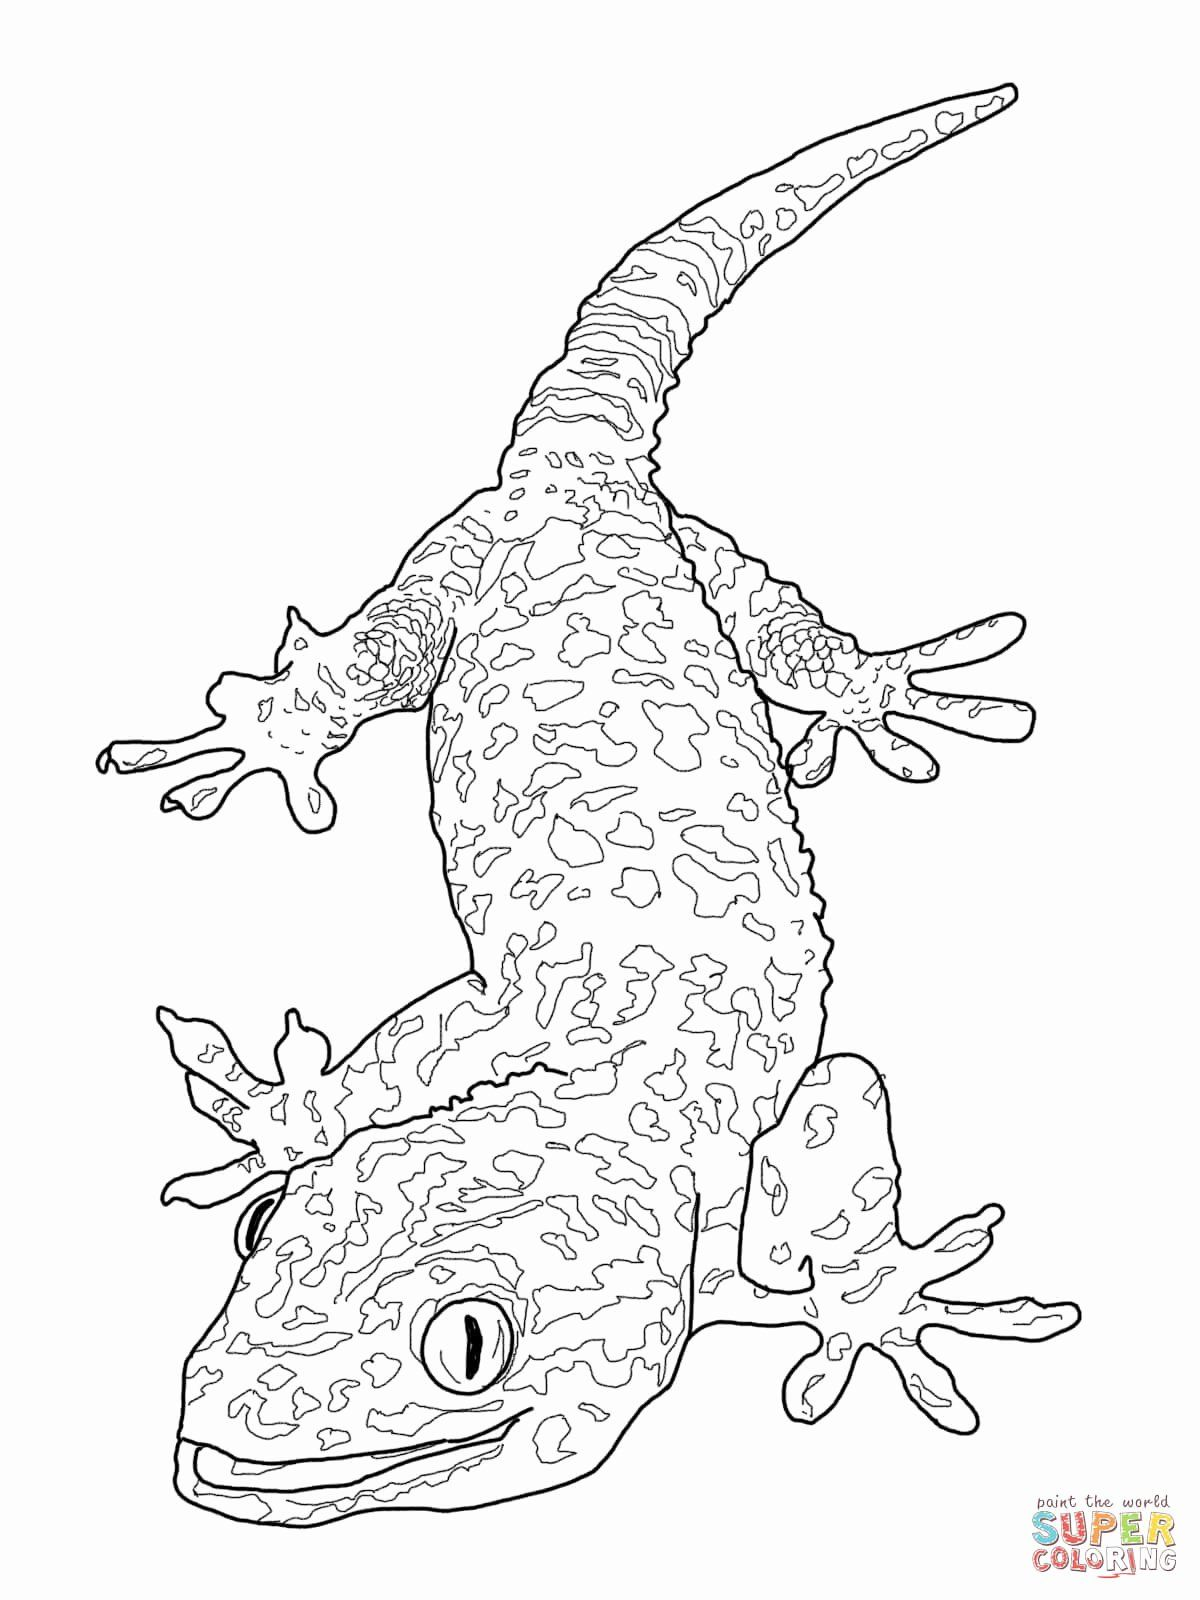 Pin On Top Coloring Pages Ideas Printable